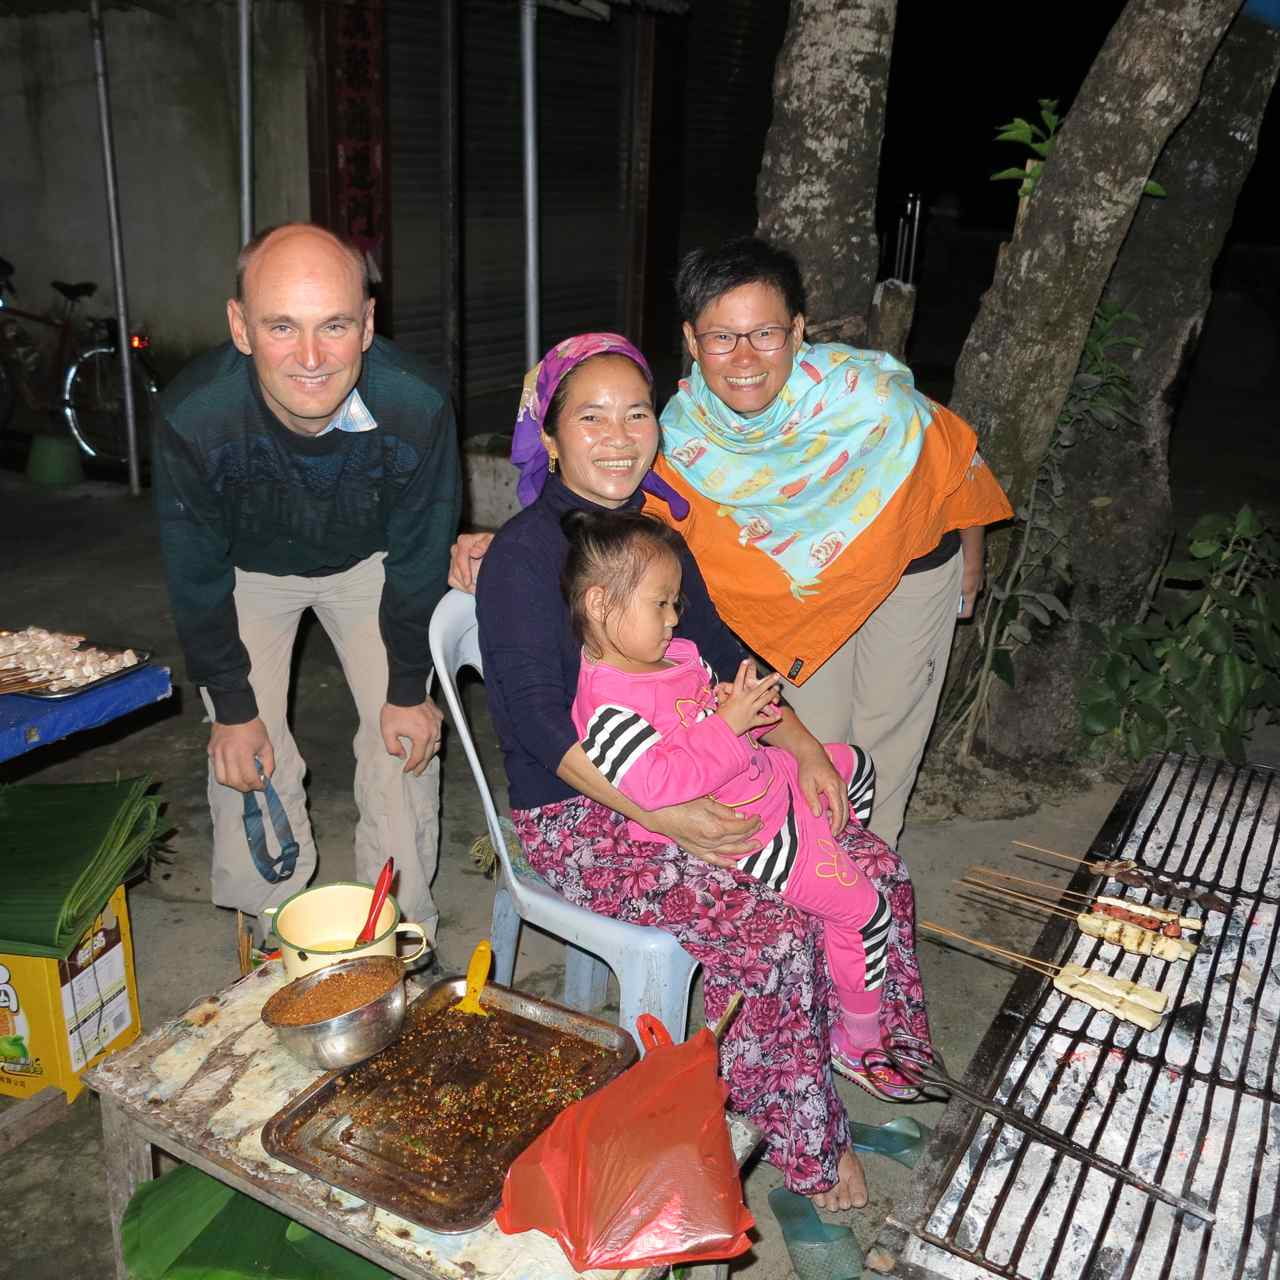 This family was the first people we met who we could talk to in Thai/Lao